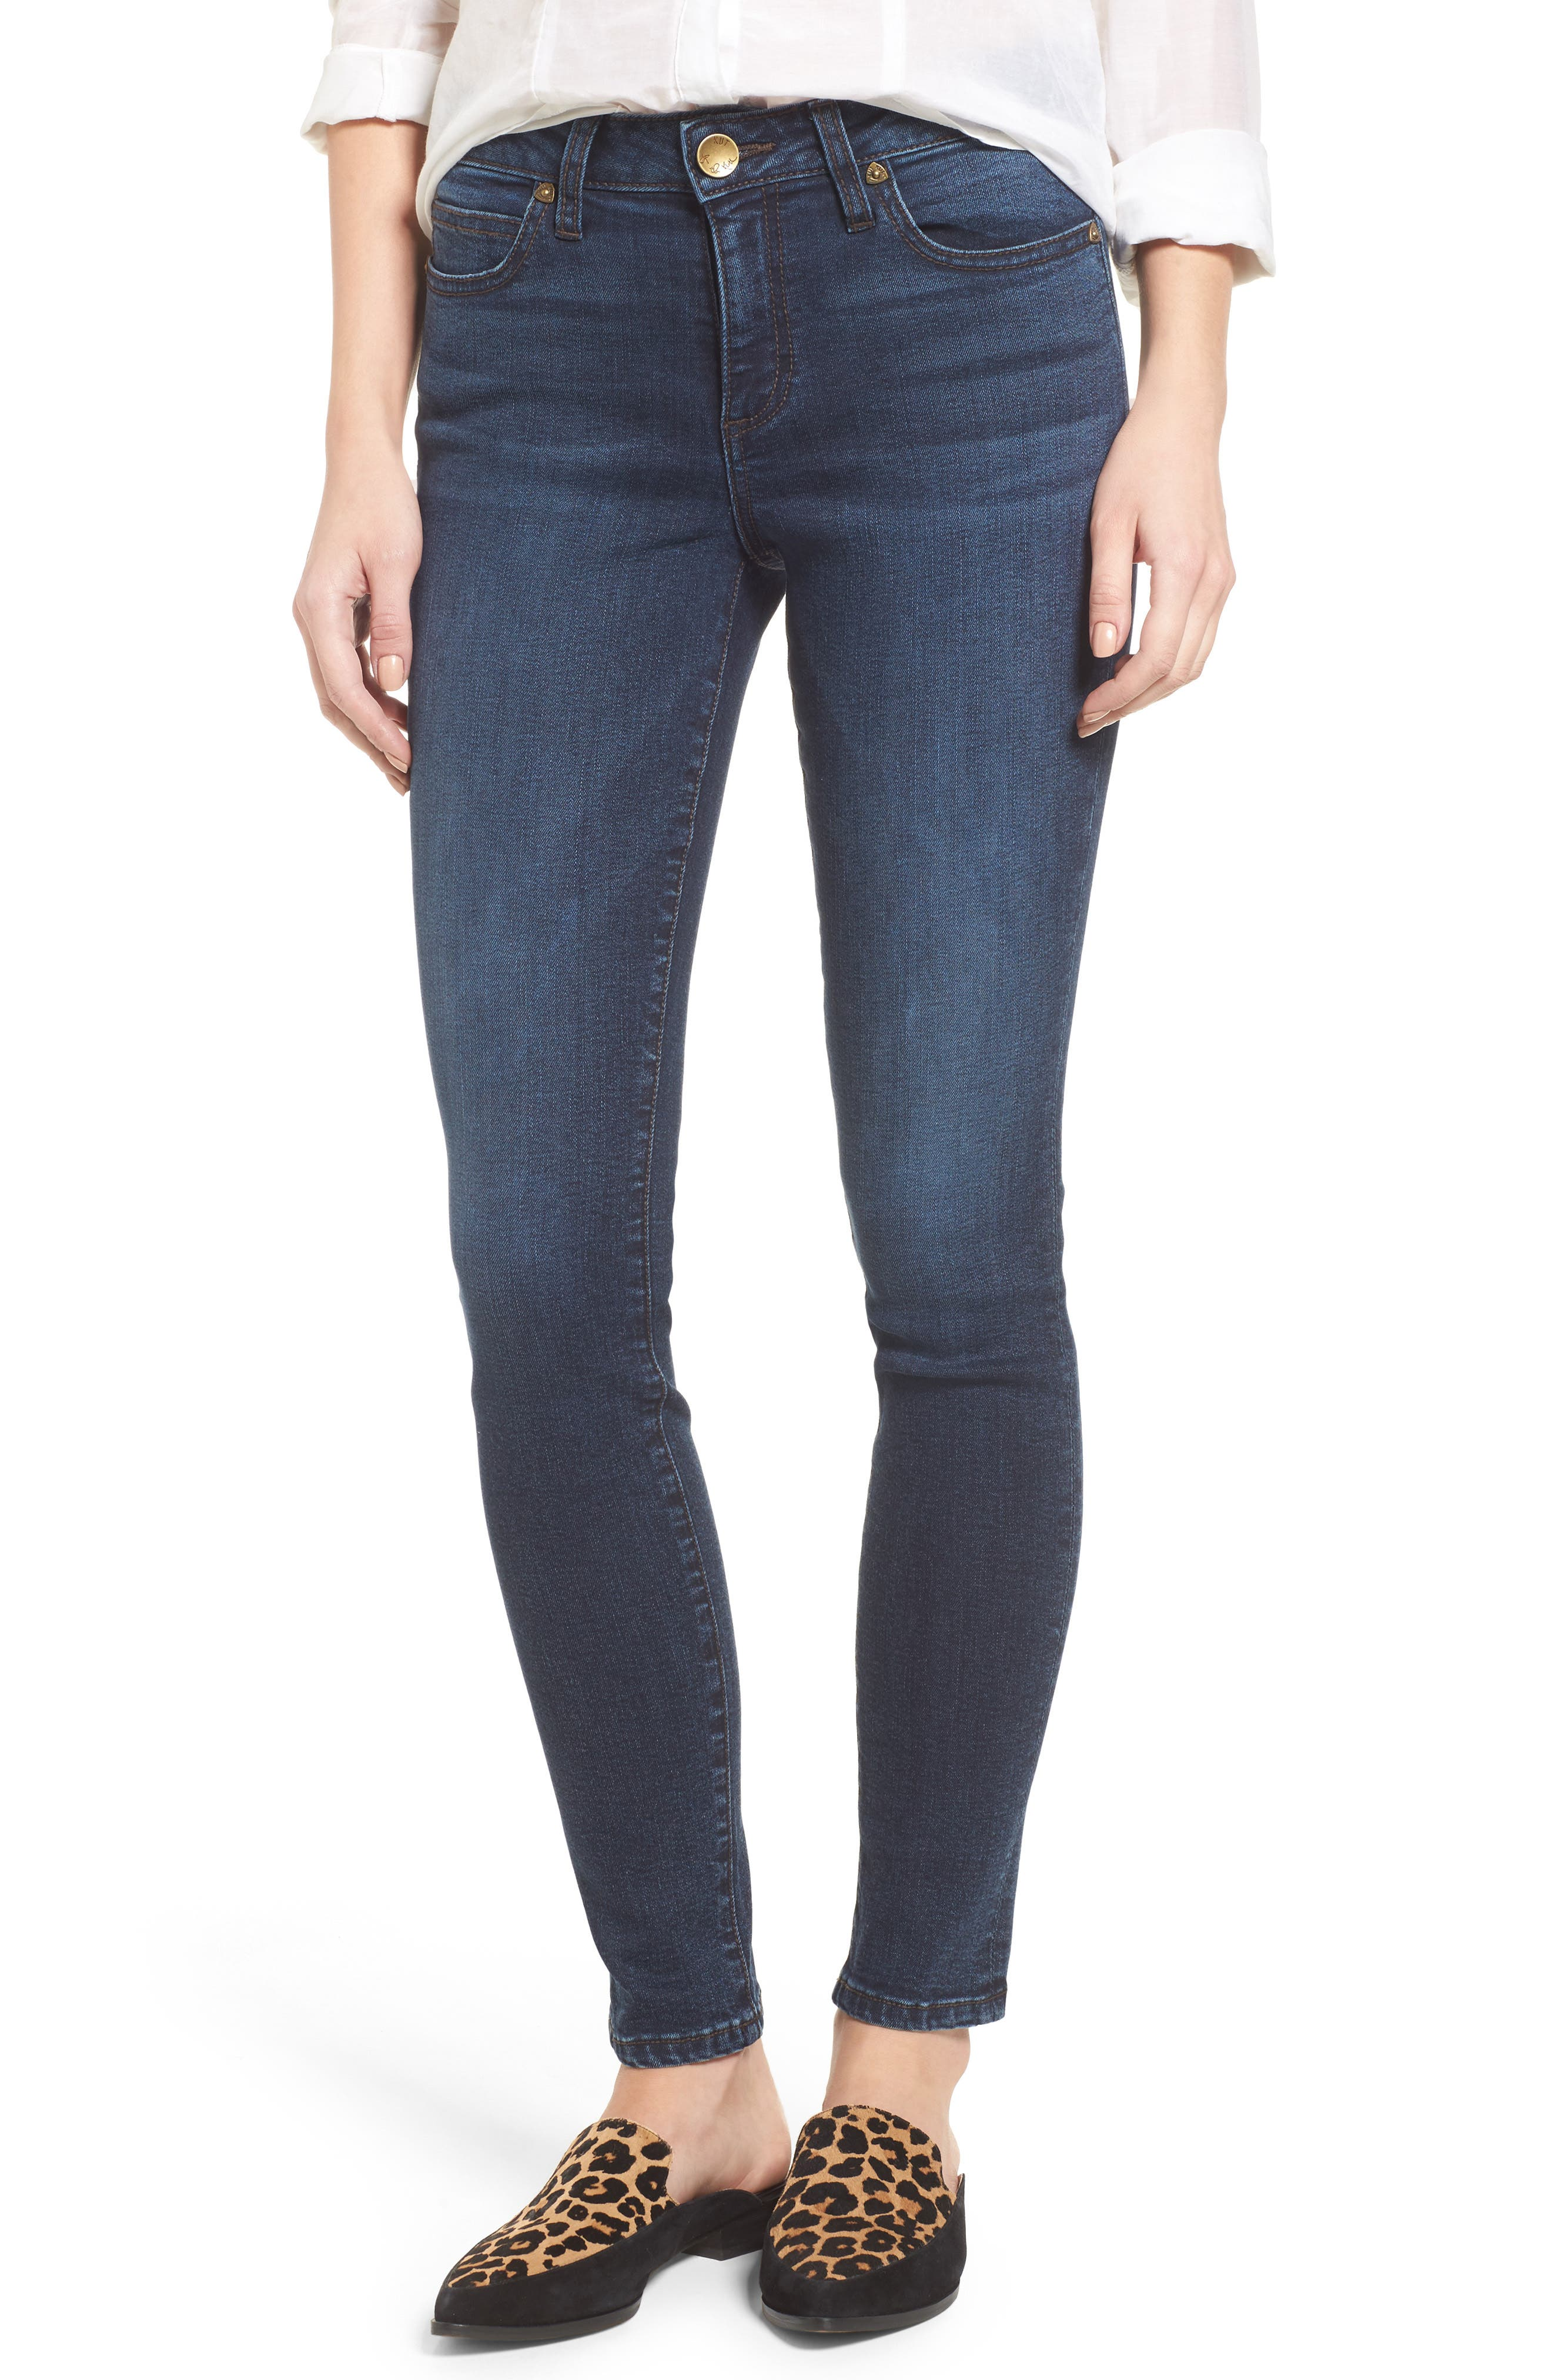 KUT from the Kloth Diana Curvy Fit Skinny Jeans (Saintly) (Regular & Petite)